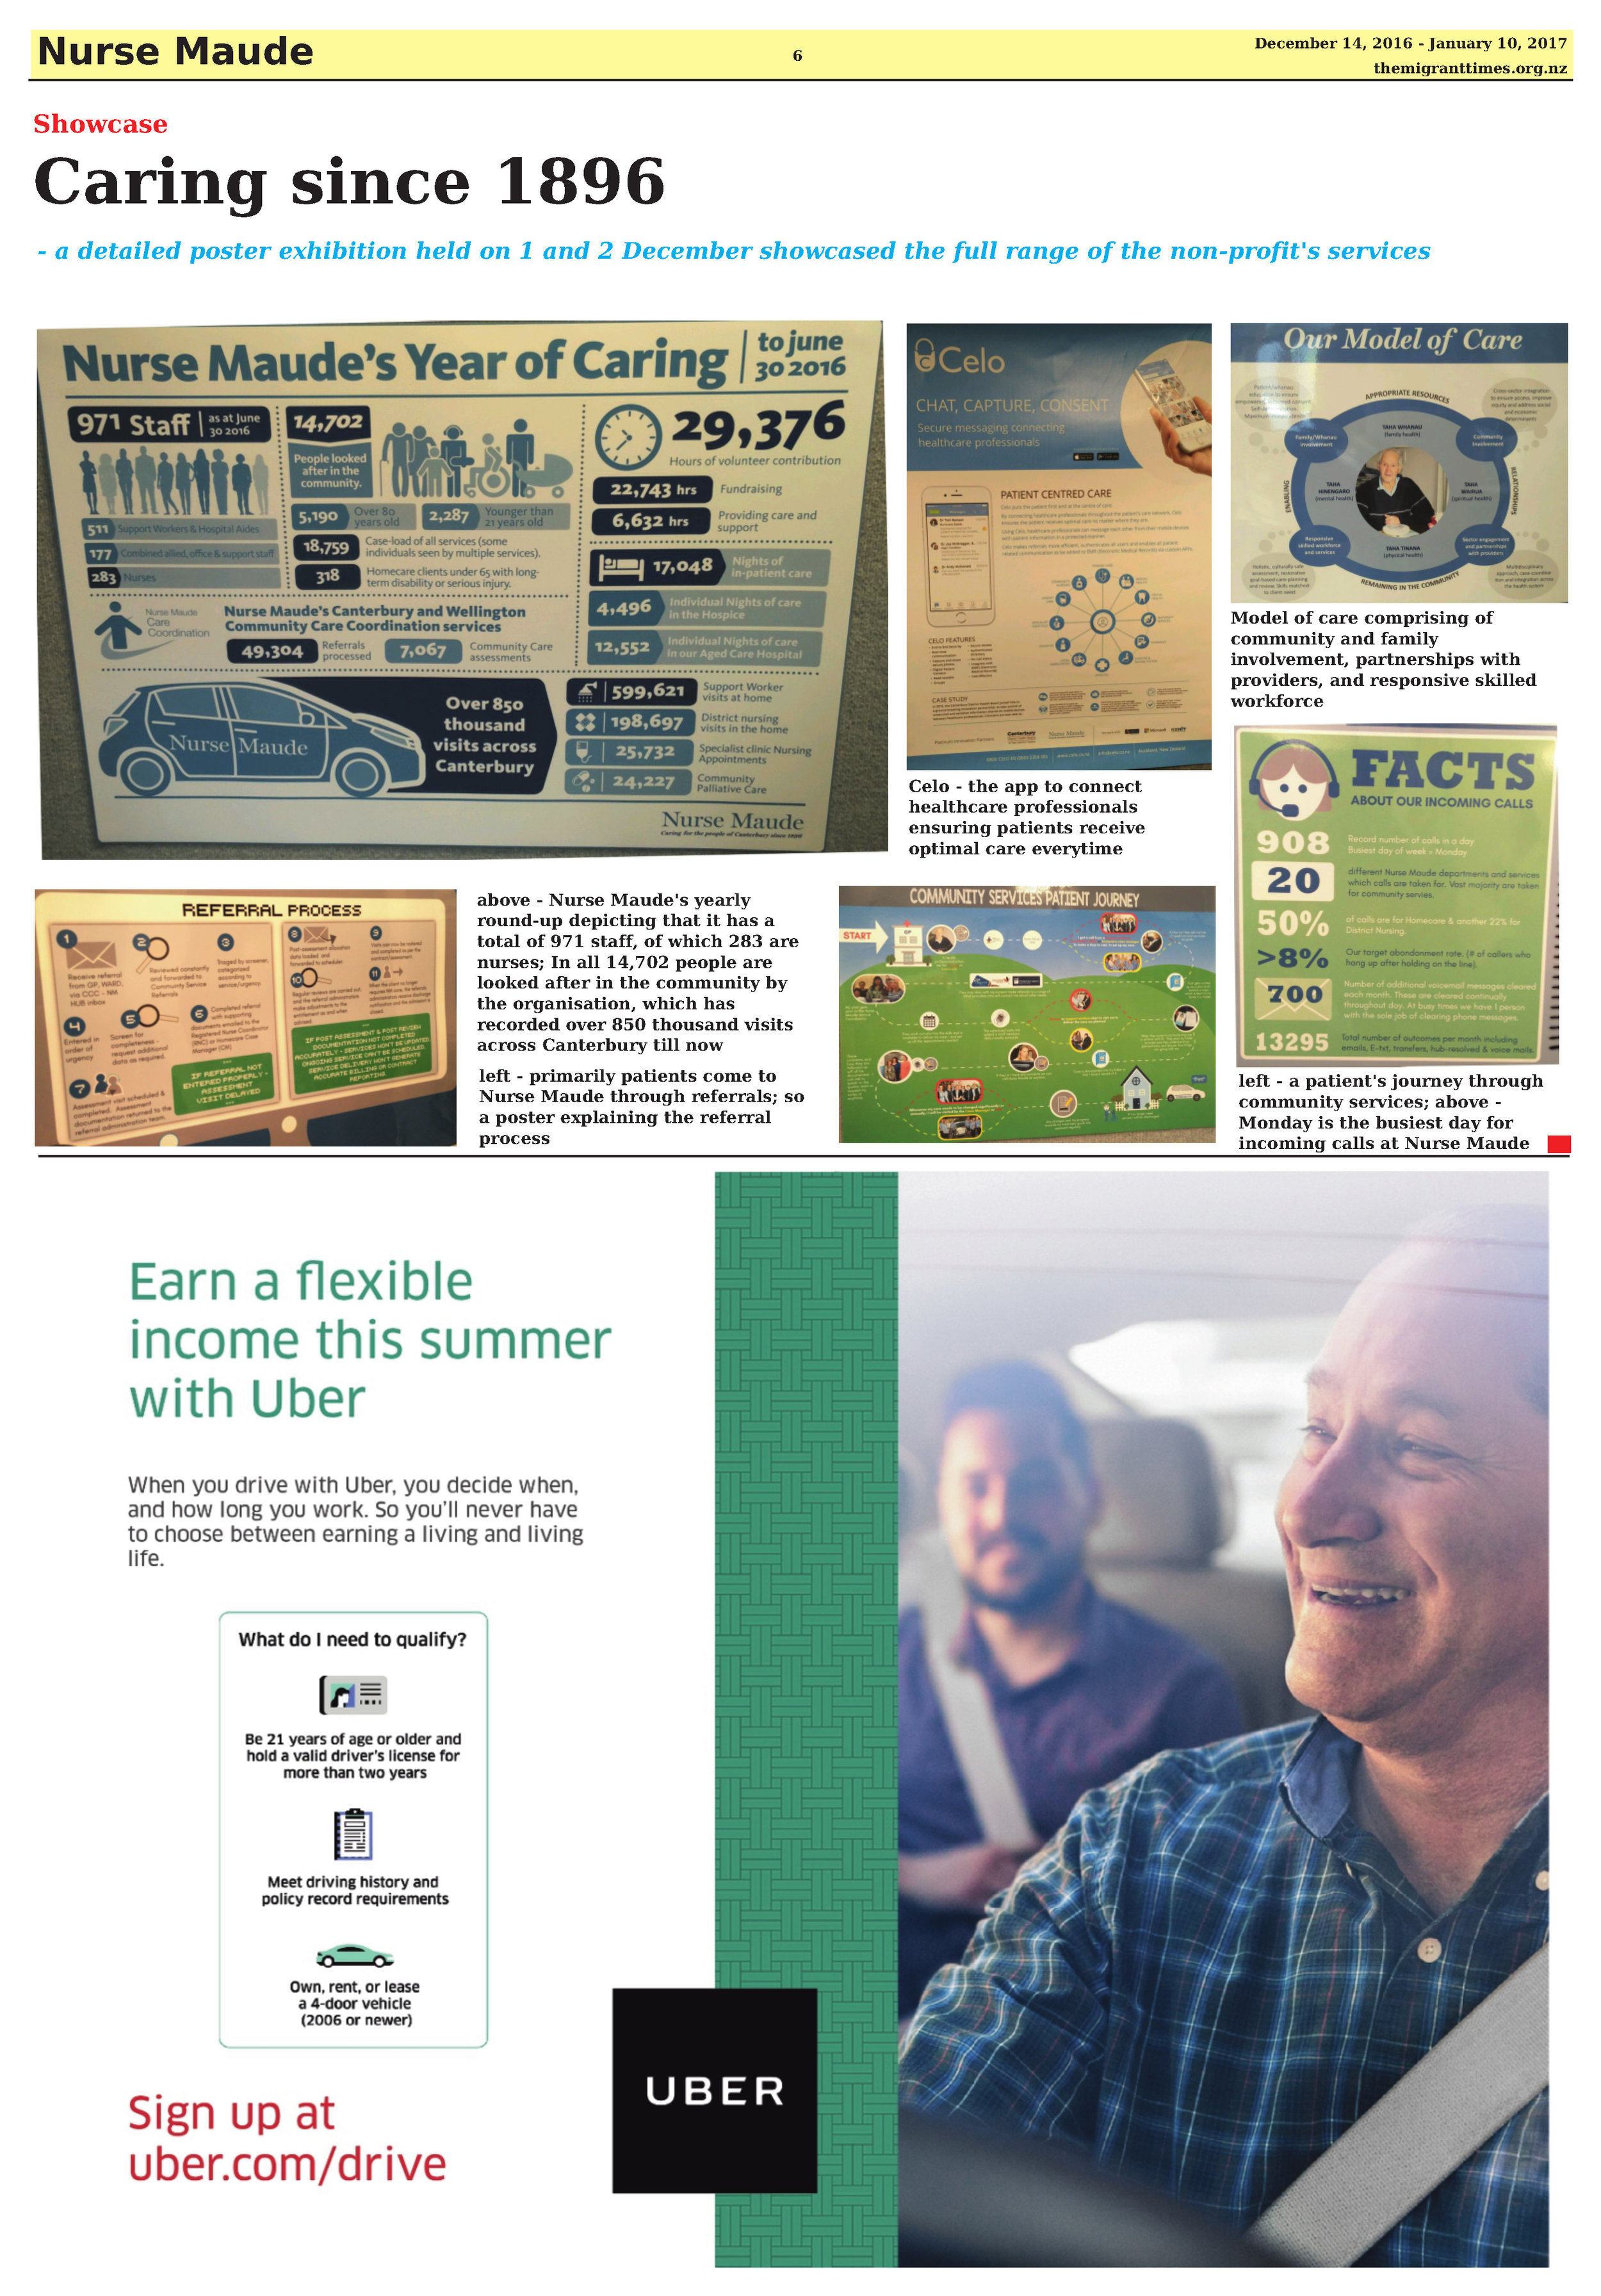 Click on the image to enlarge and read the printed version of the article